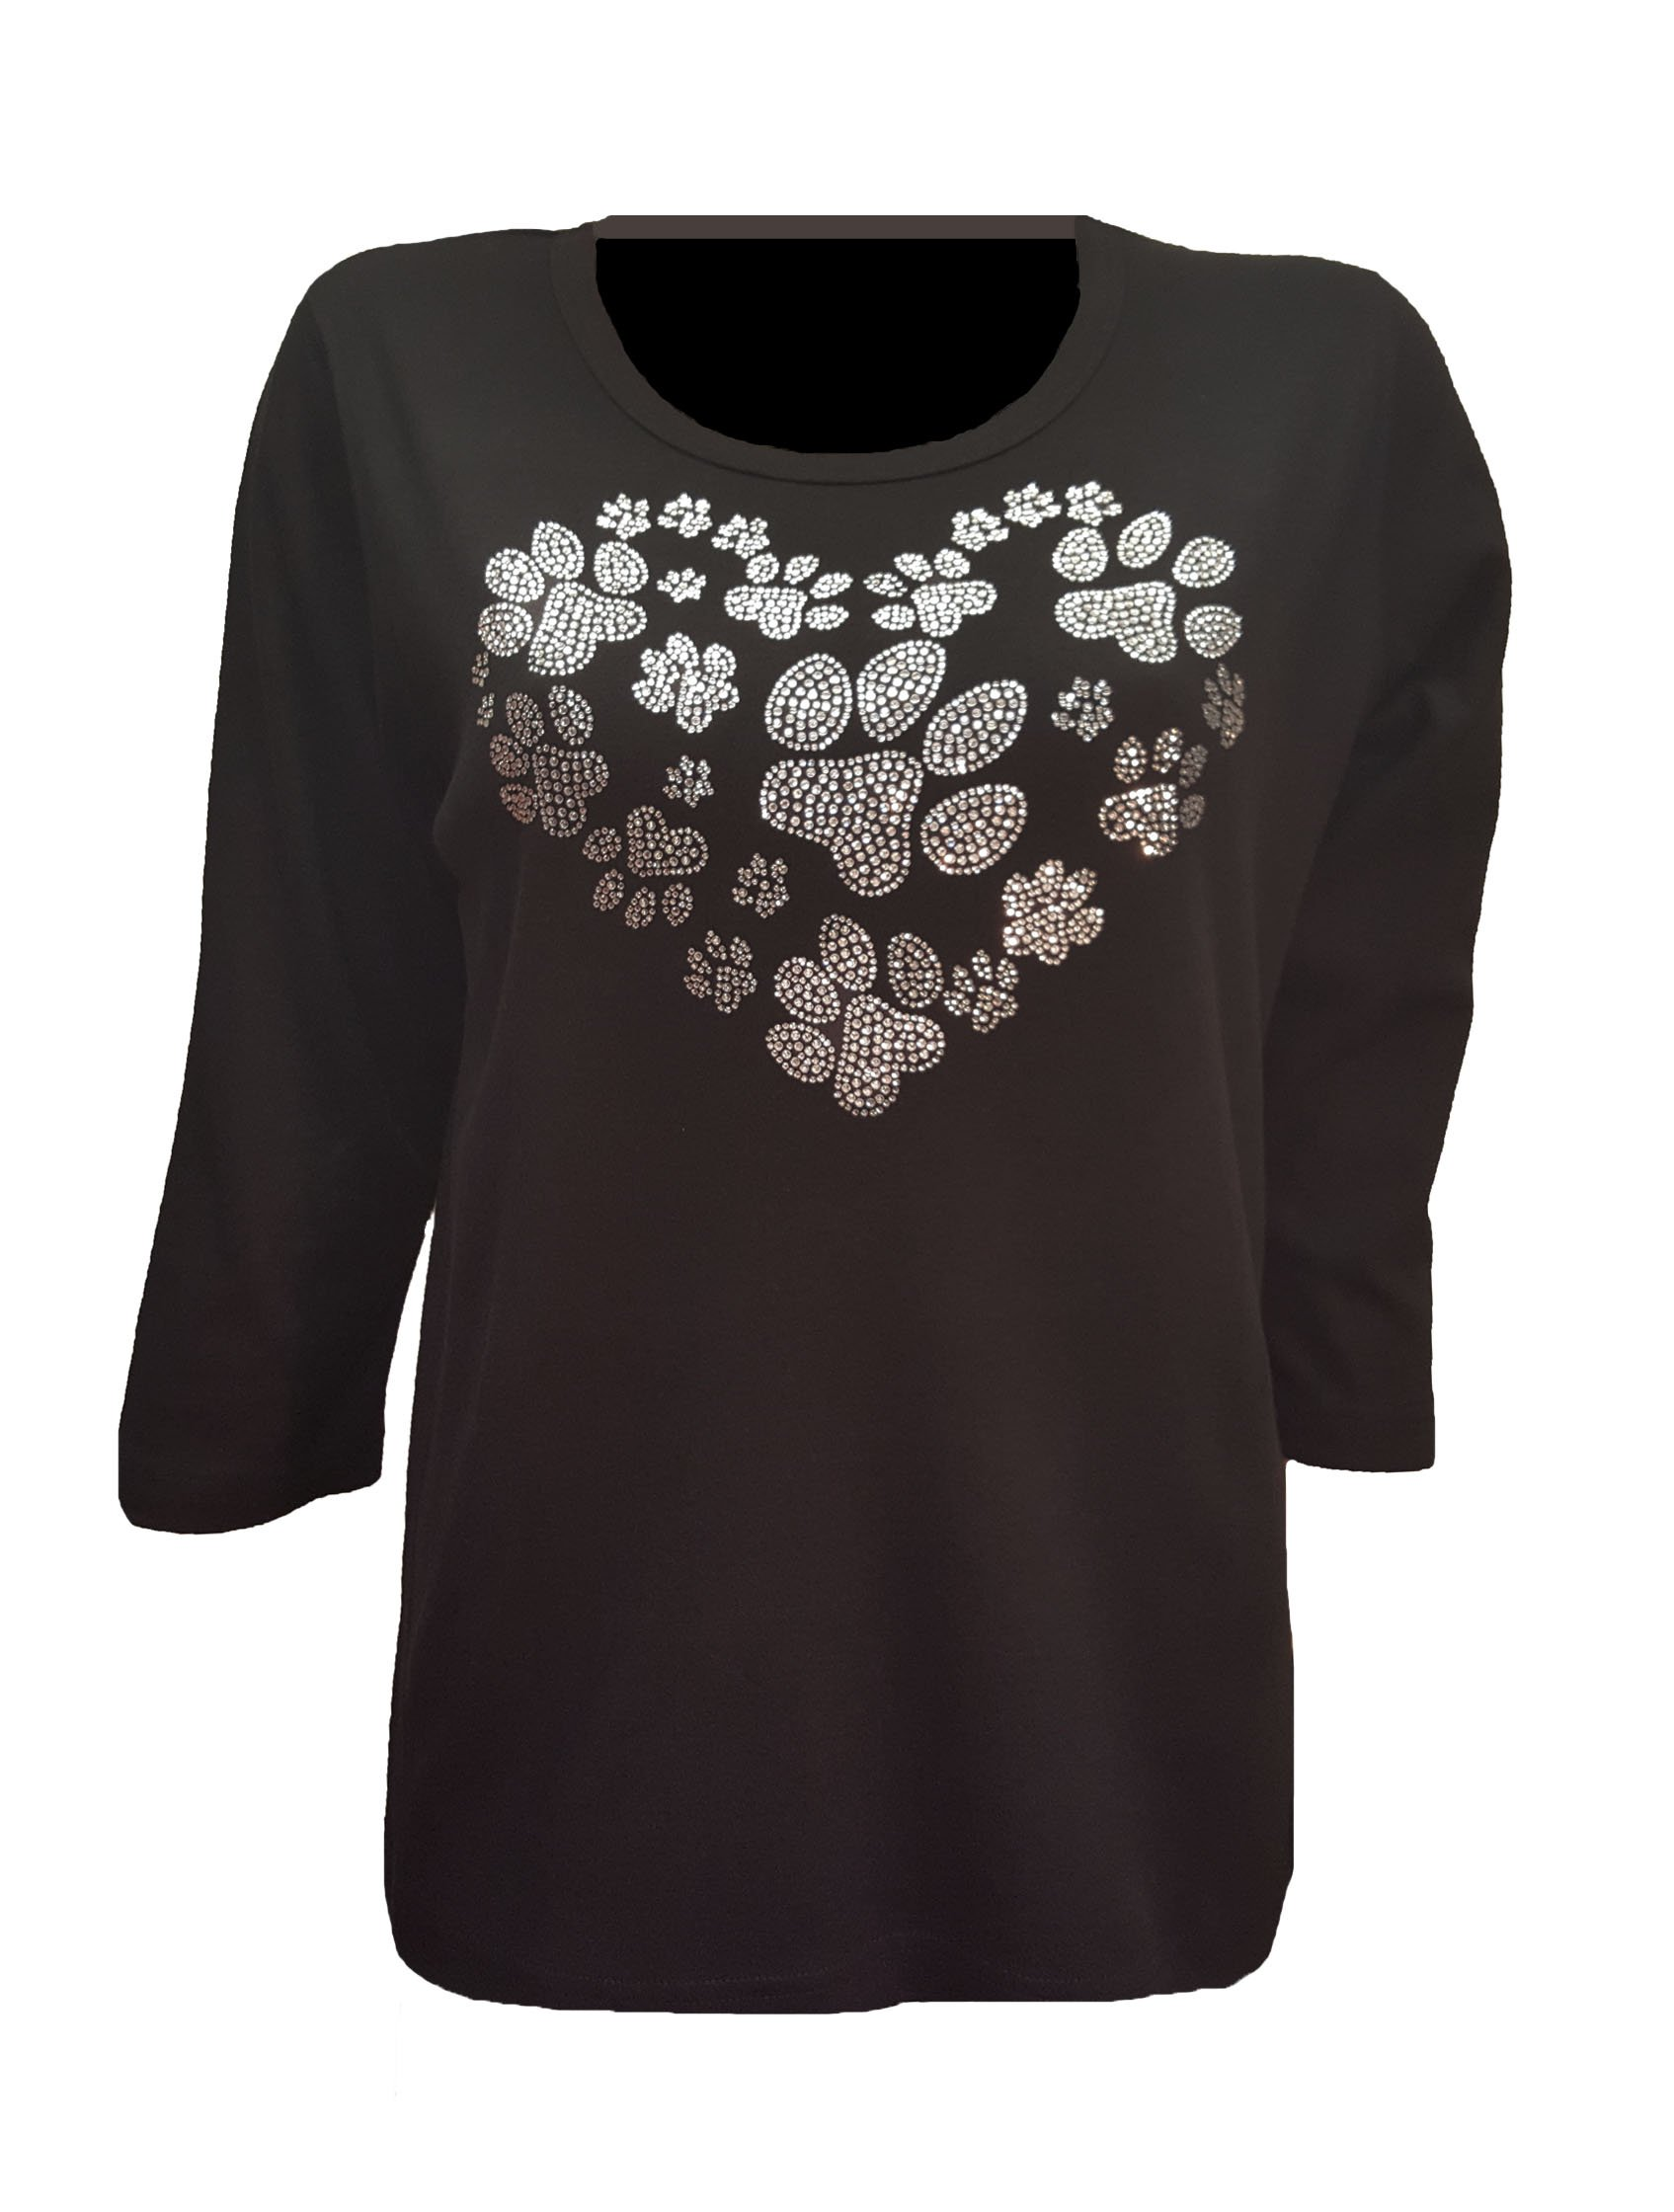 Dog Paw Print Heart Bling Black T-Shirt with Rhinestones. (XL) by ID ISAAC'S DESIGNS